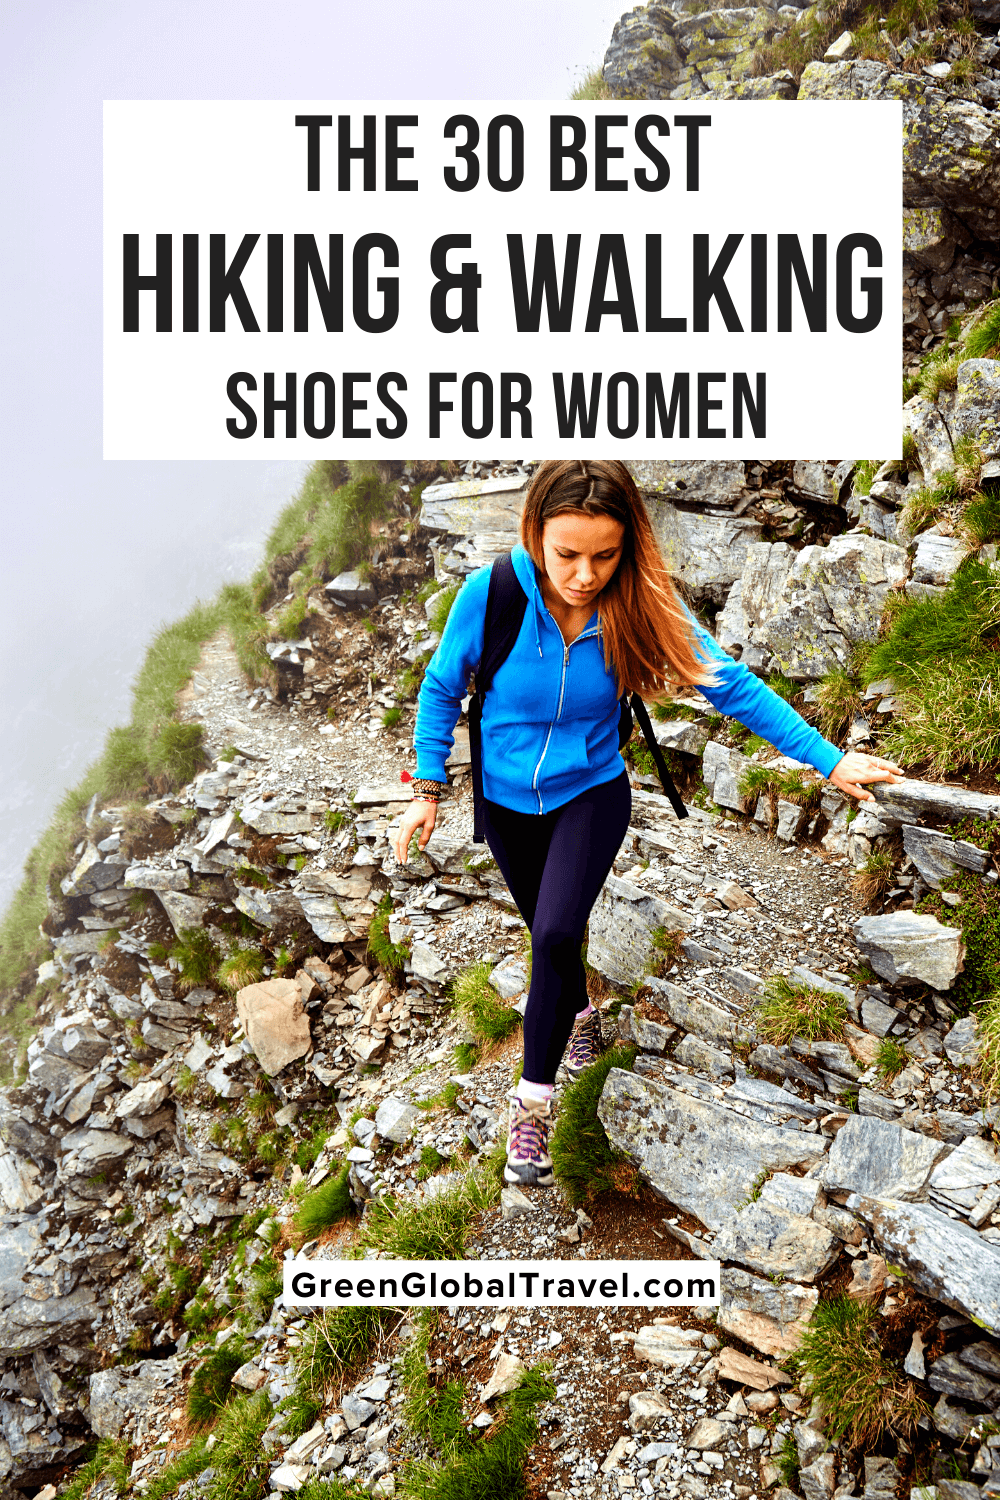 The 30+ best women's hiking, running and walking shoes for 2021, from fun and fashionable to technical shoes designed to conquer any terrain. | womens hiking shoes | ladies walking boots | womens hiking boots | womens waterproof walking boots | womens walking shoes | ladies walking shoes | best sneakers for walking | women's walking shoes with arch support | walking sneakers | cushion walk shoes | ladies waterproof walking shoes | best trail running shoes for women | trail shoes women |